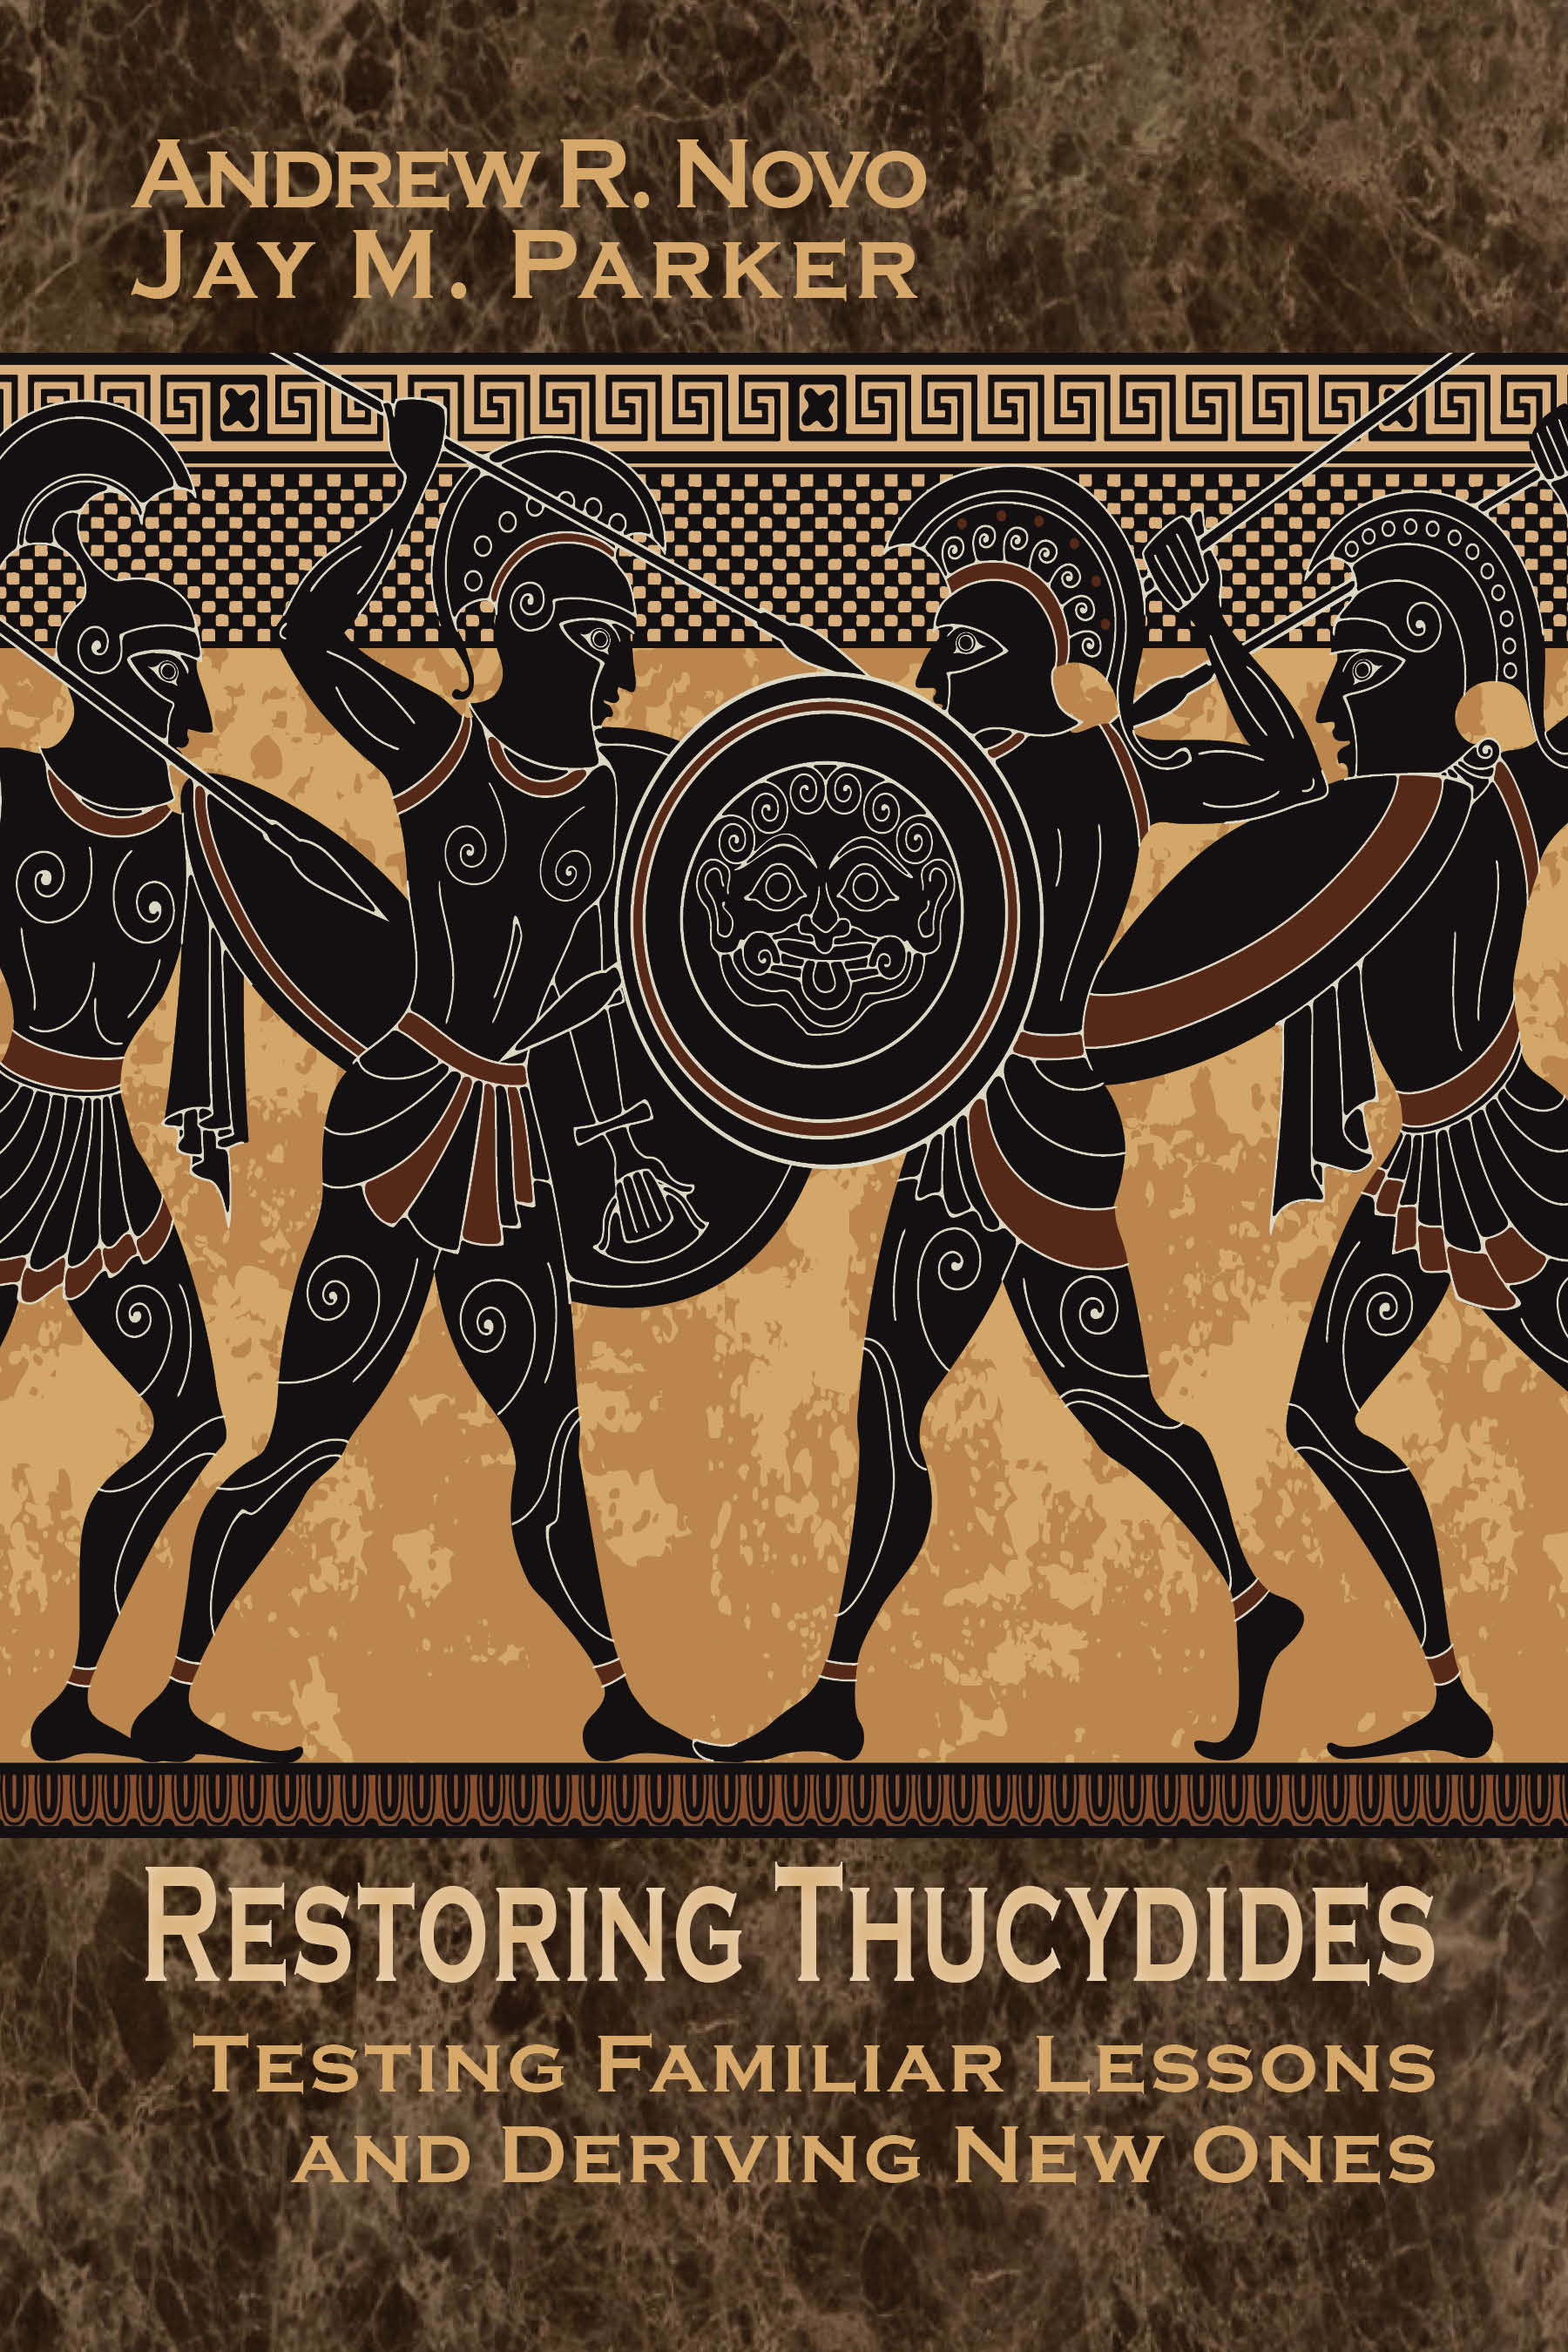 Restoring Thucydides: Testing Familiar Lessons and Deriving New Ones Andrew R. Novo and Jay M. Parker